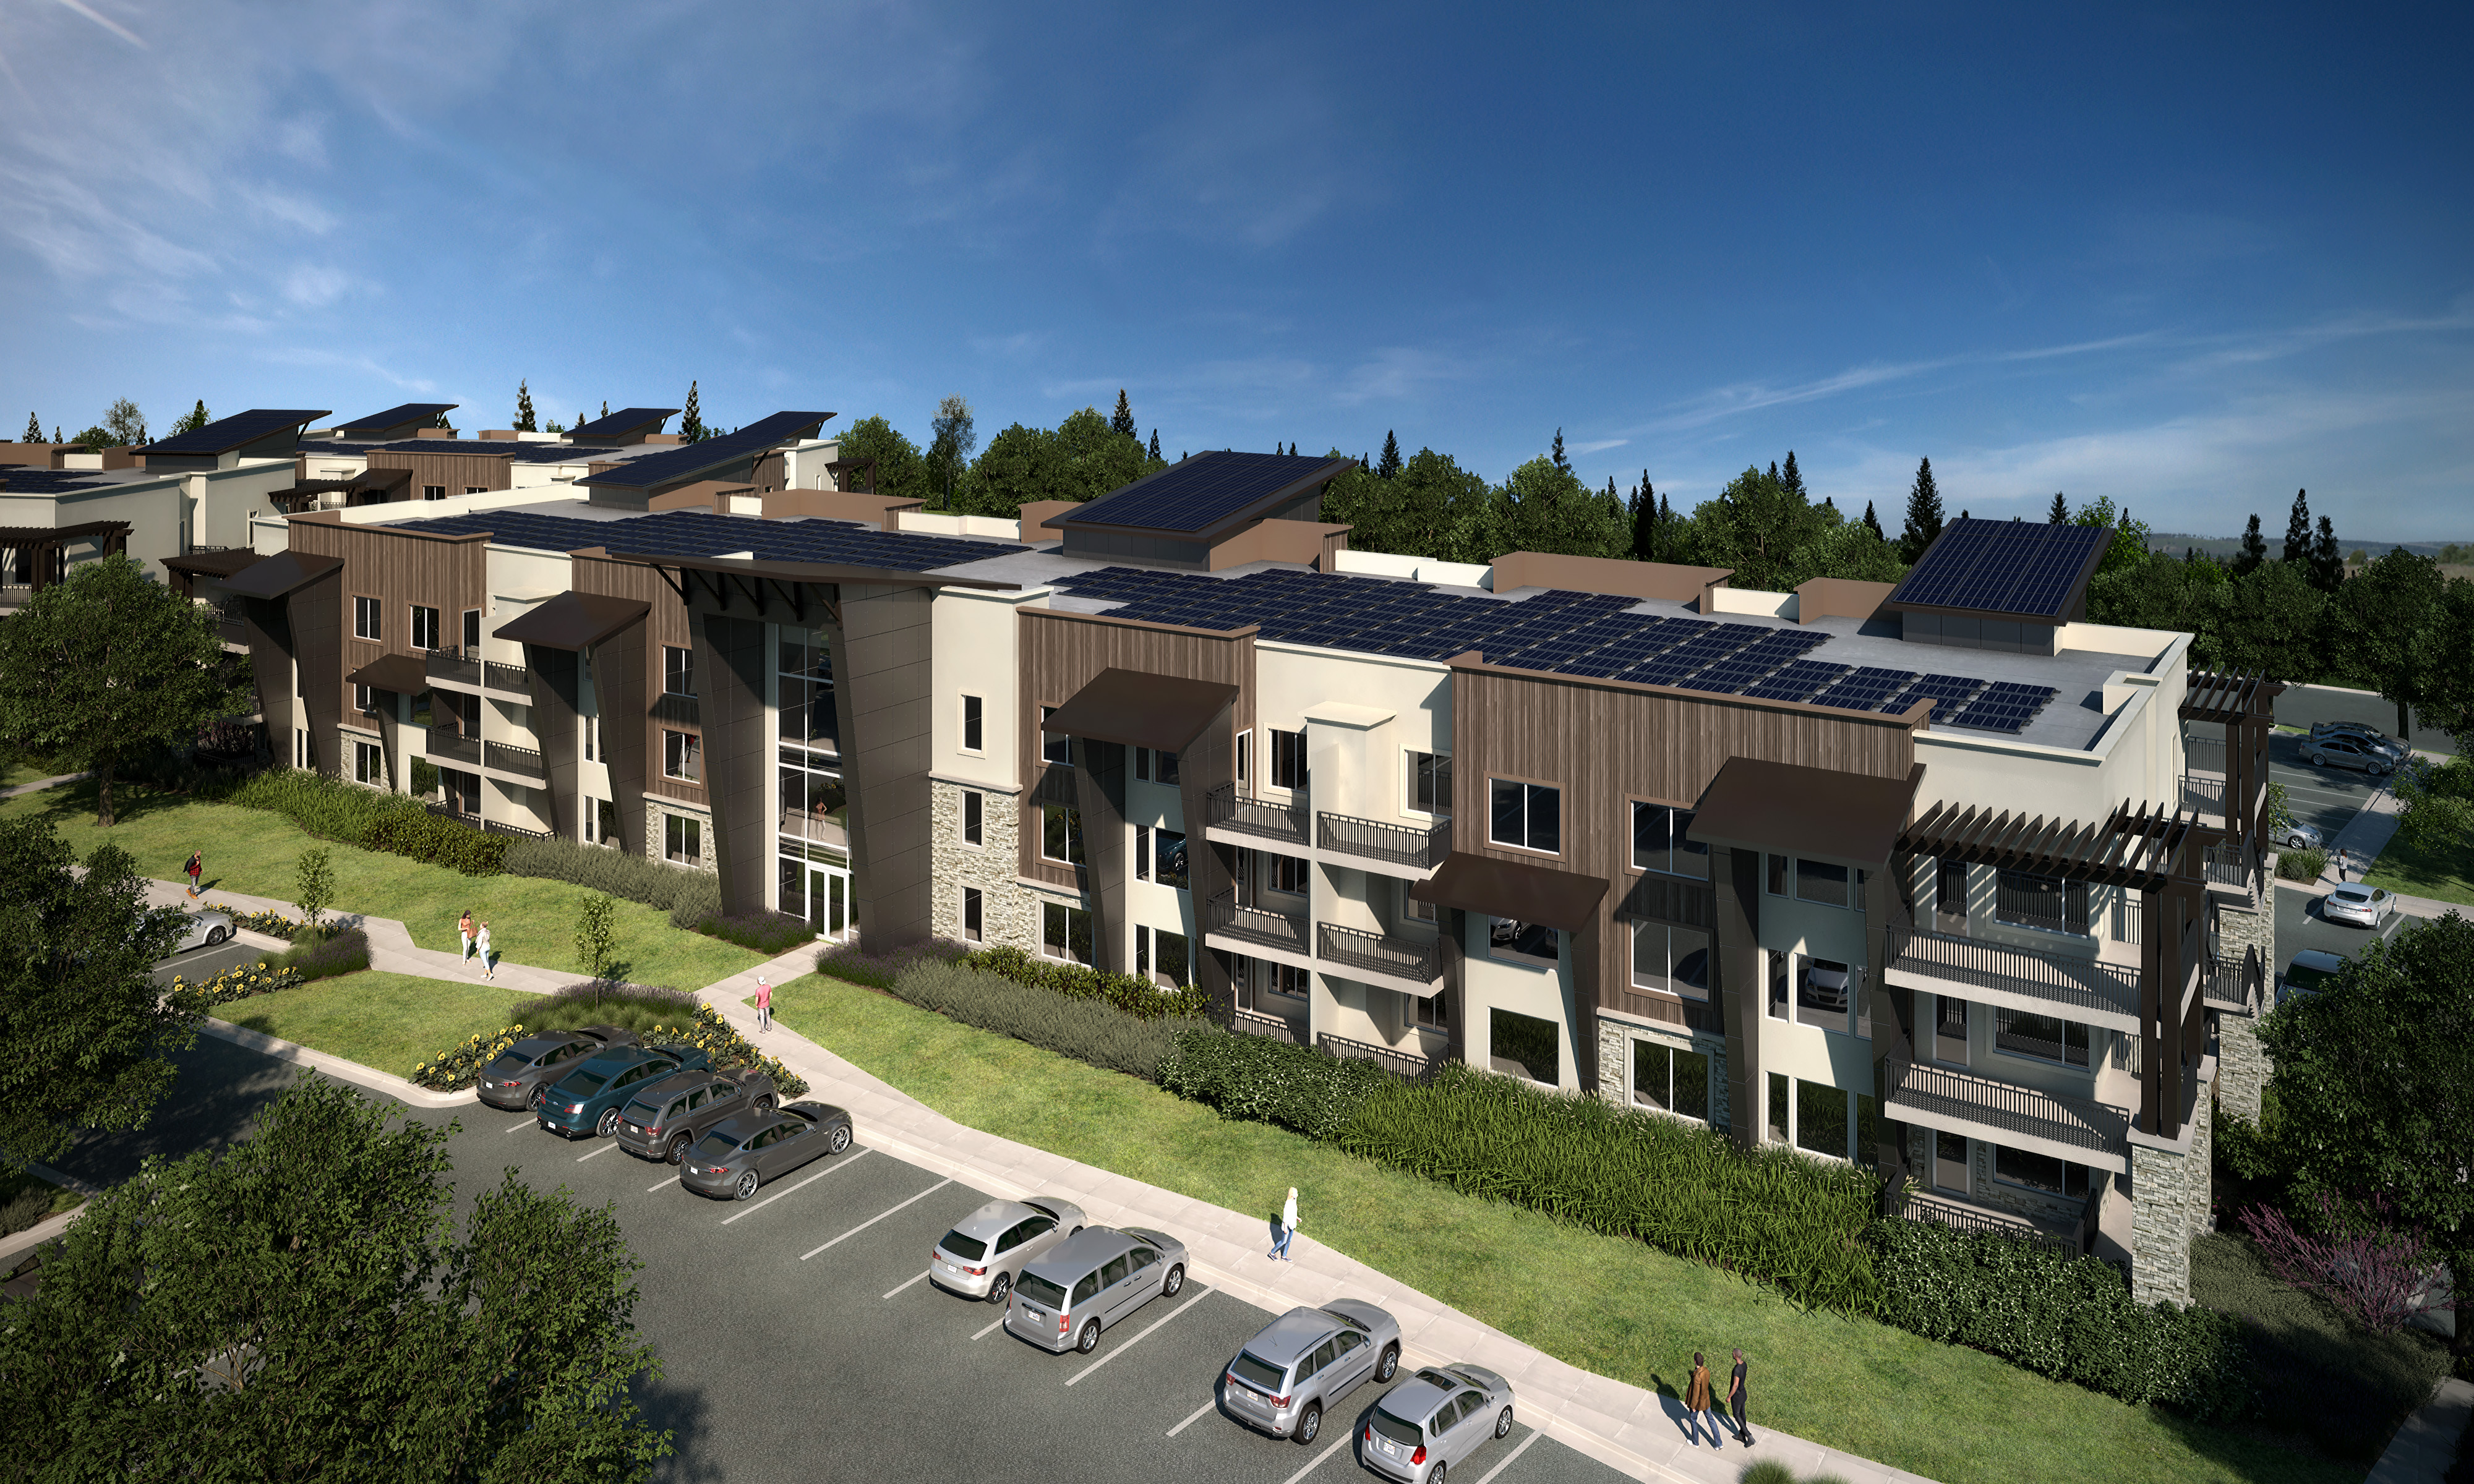 A modern rental community featuring contemporary facades and rooftop solar panels.